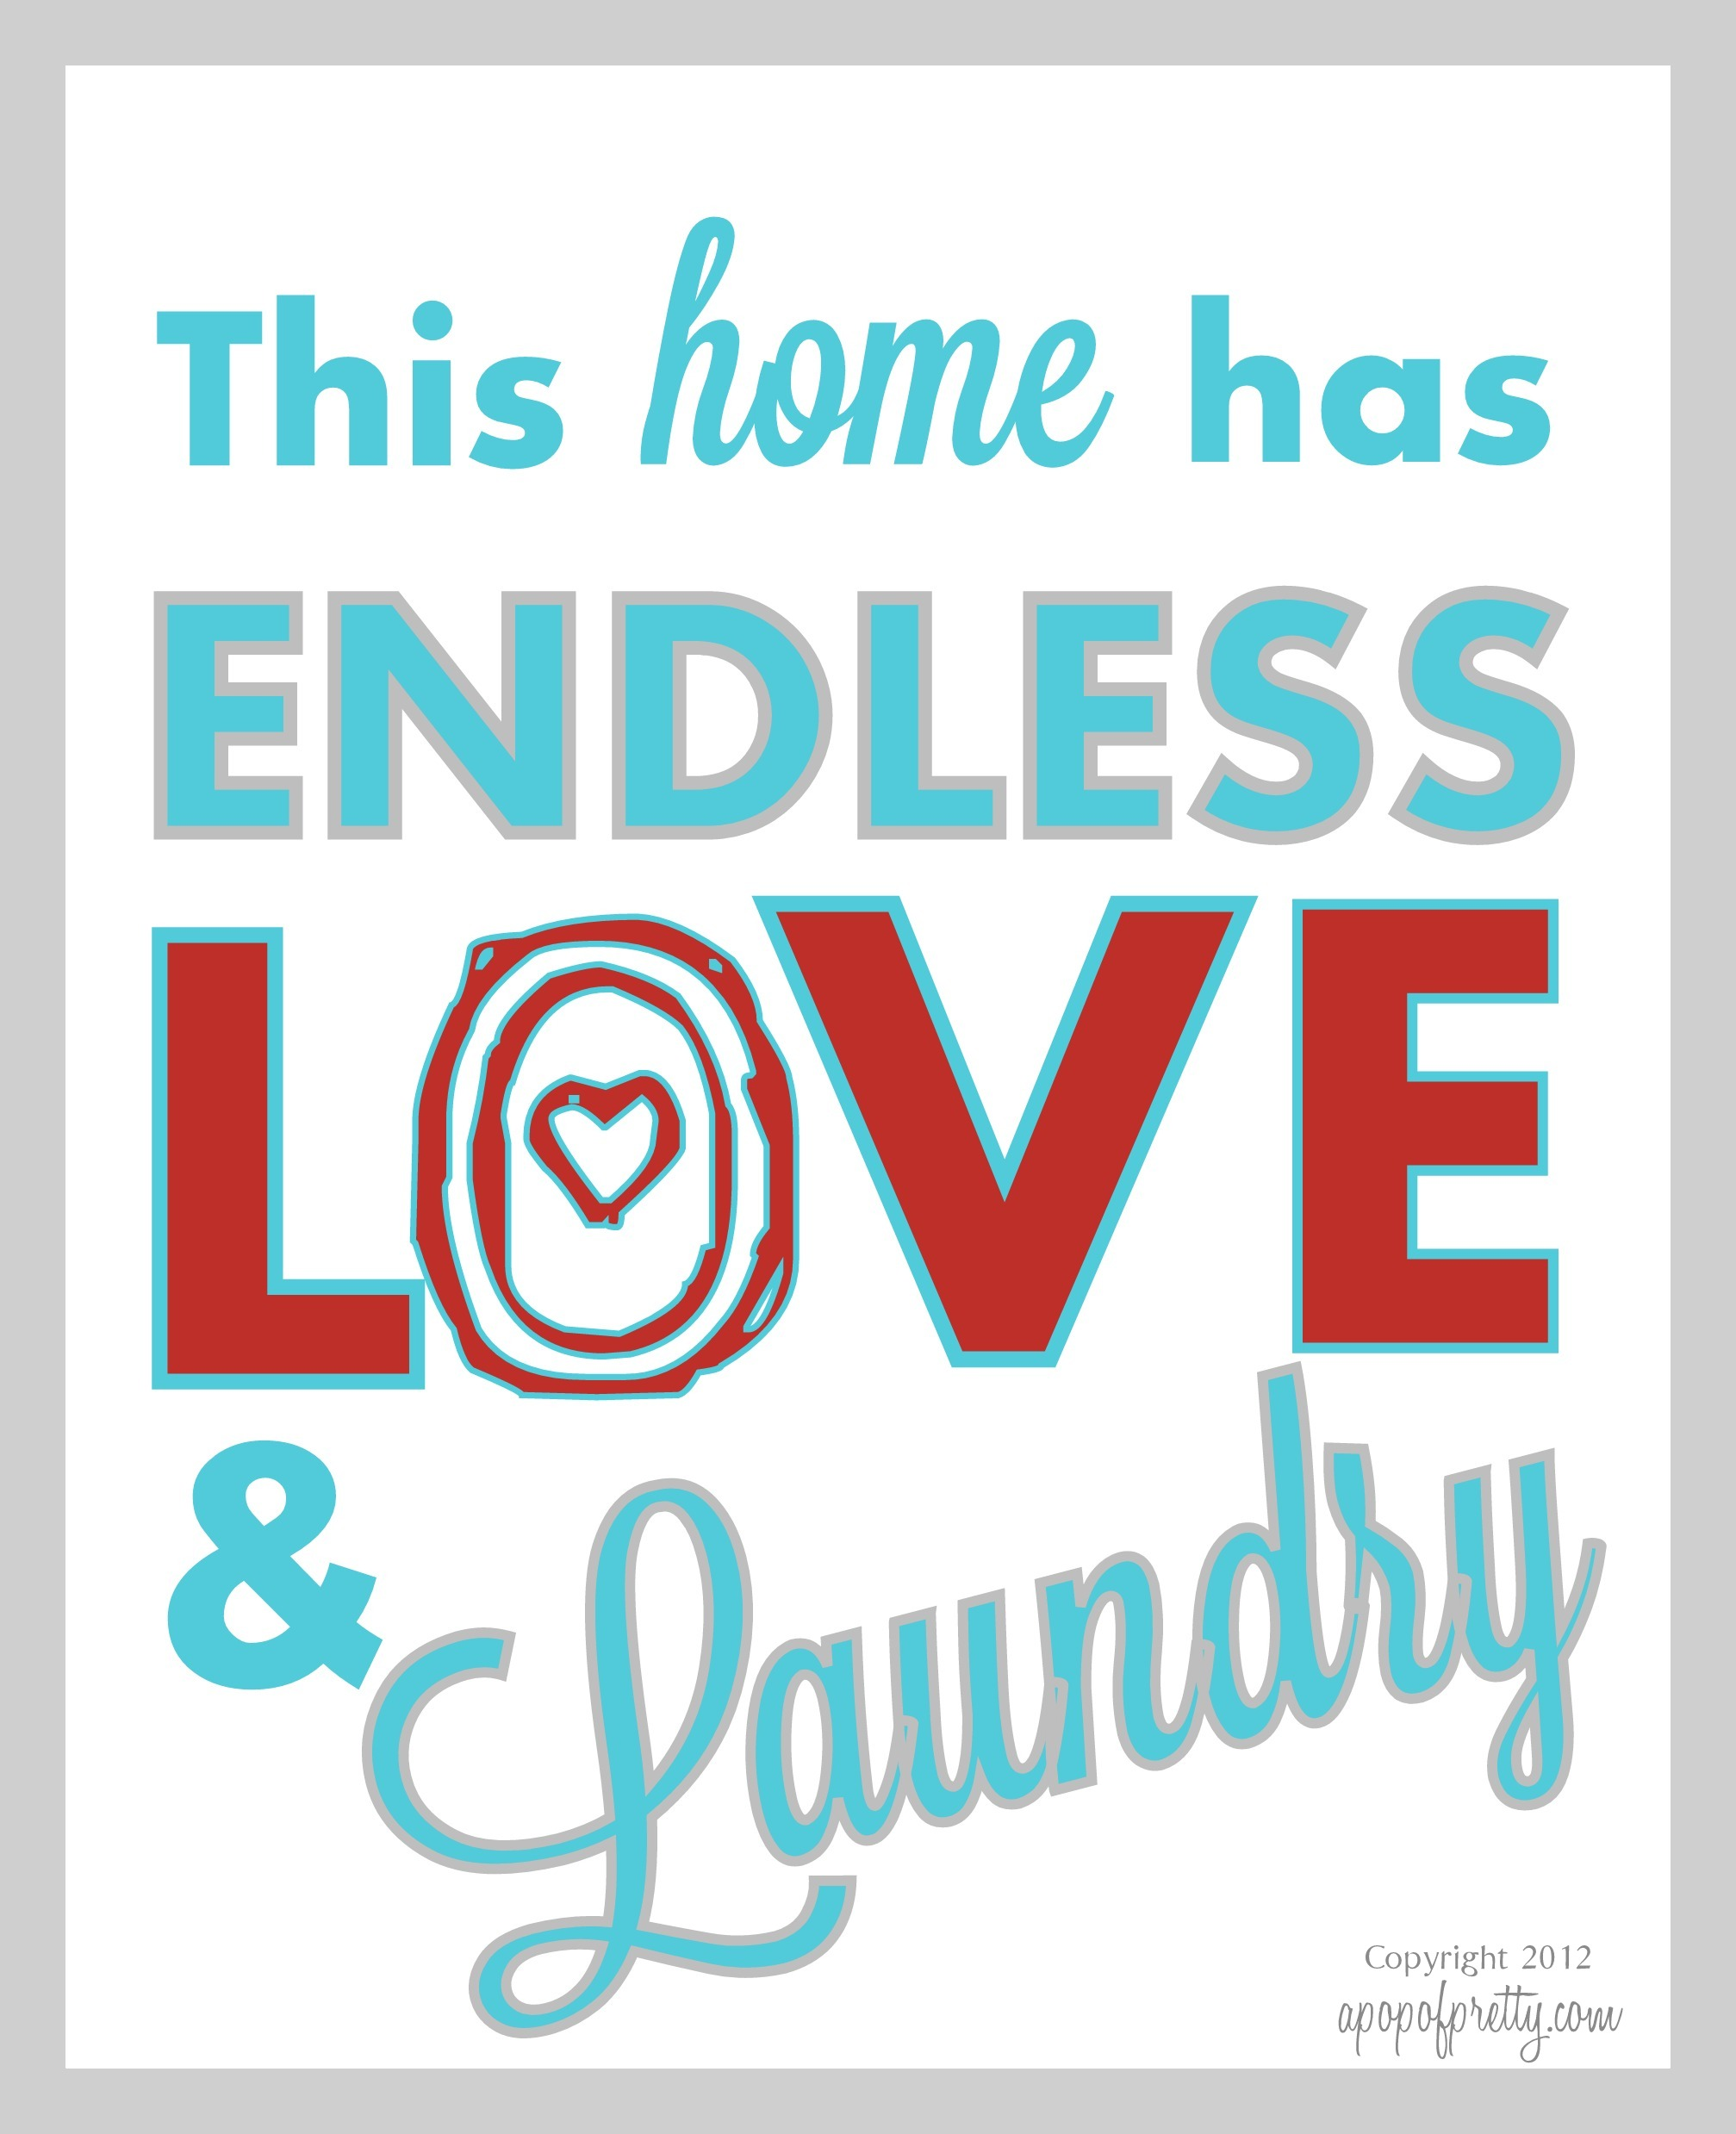 diy artwork - Love and Laundry